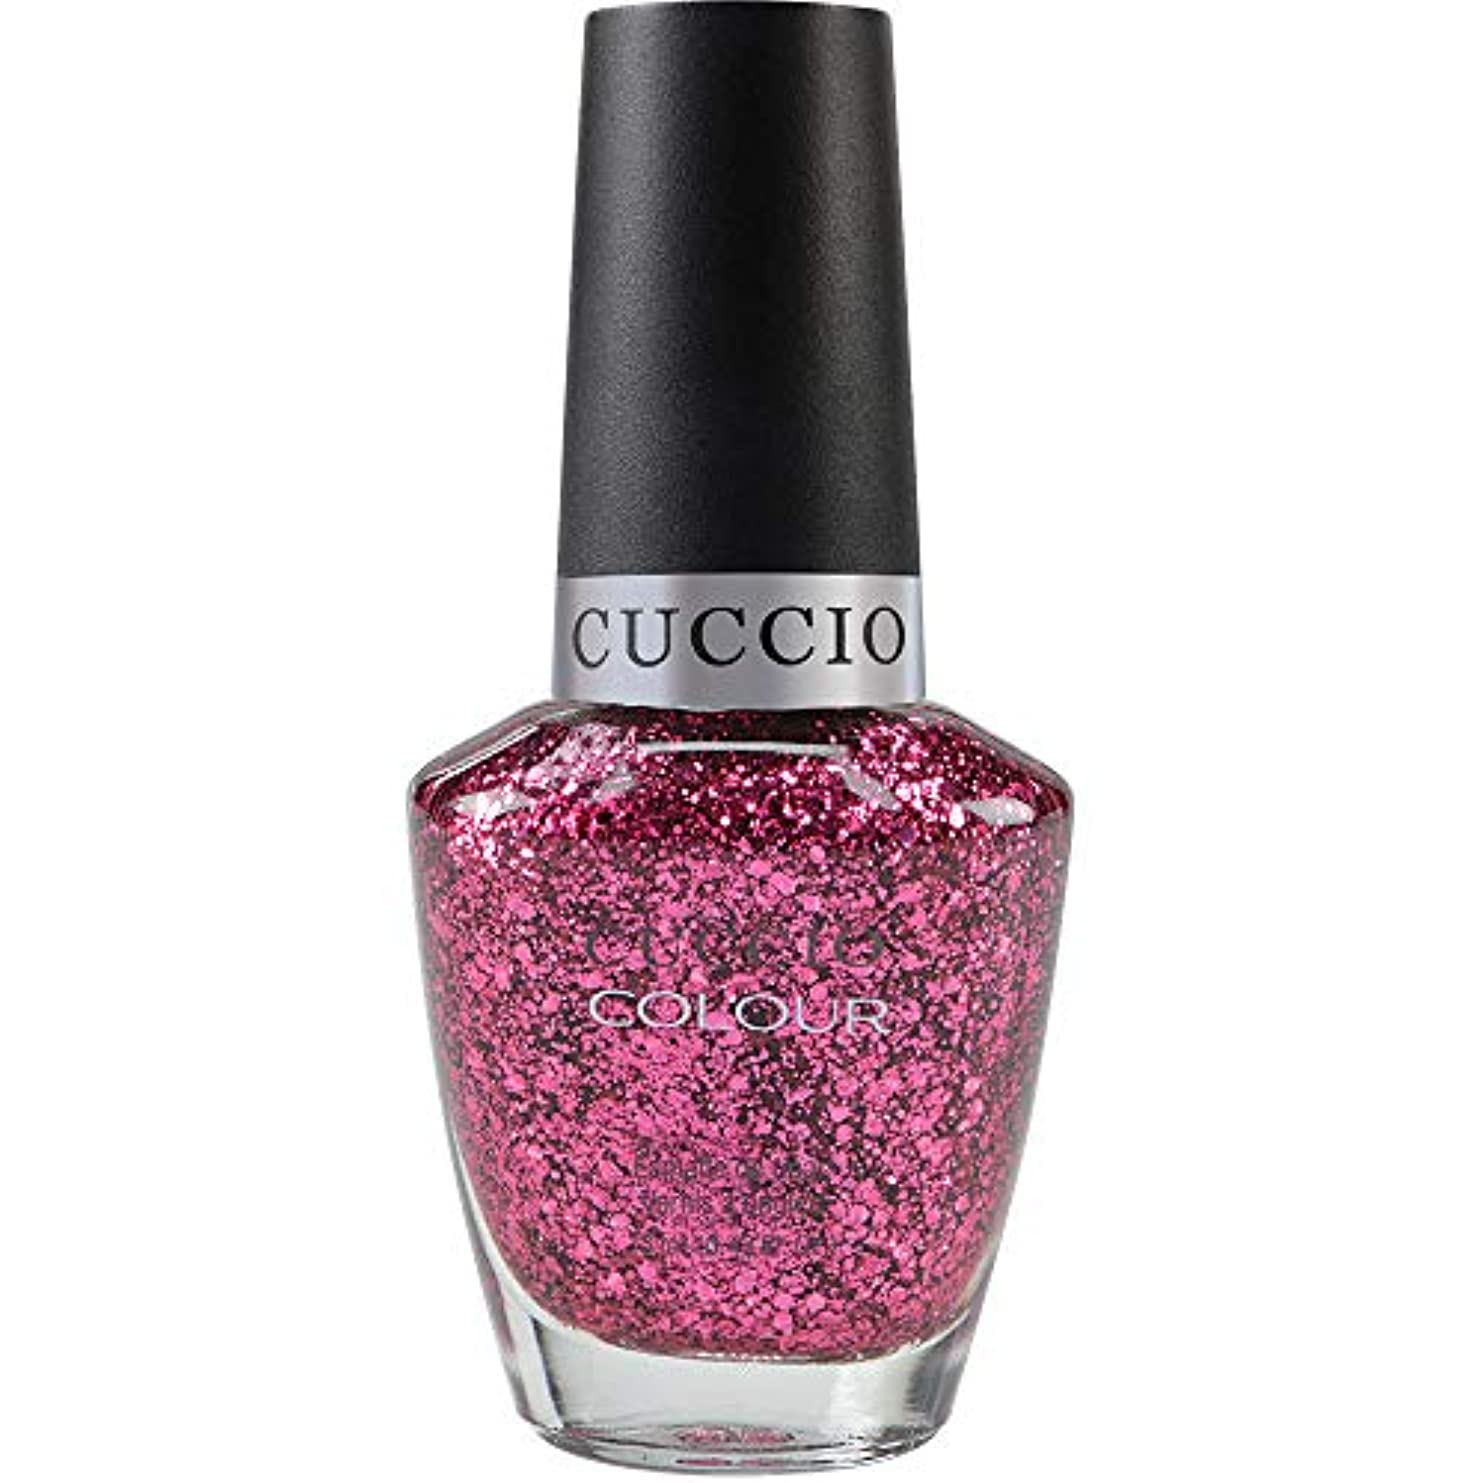 護衛ライフル散歩に行くCuccio Colour Gloss Lacquer - Love Potion NO. 9 - 0.43oz / 13ml